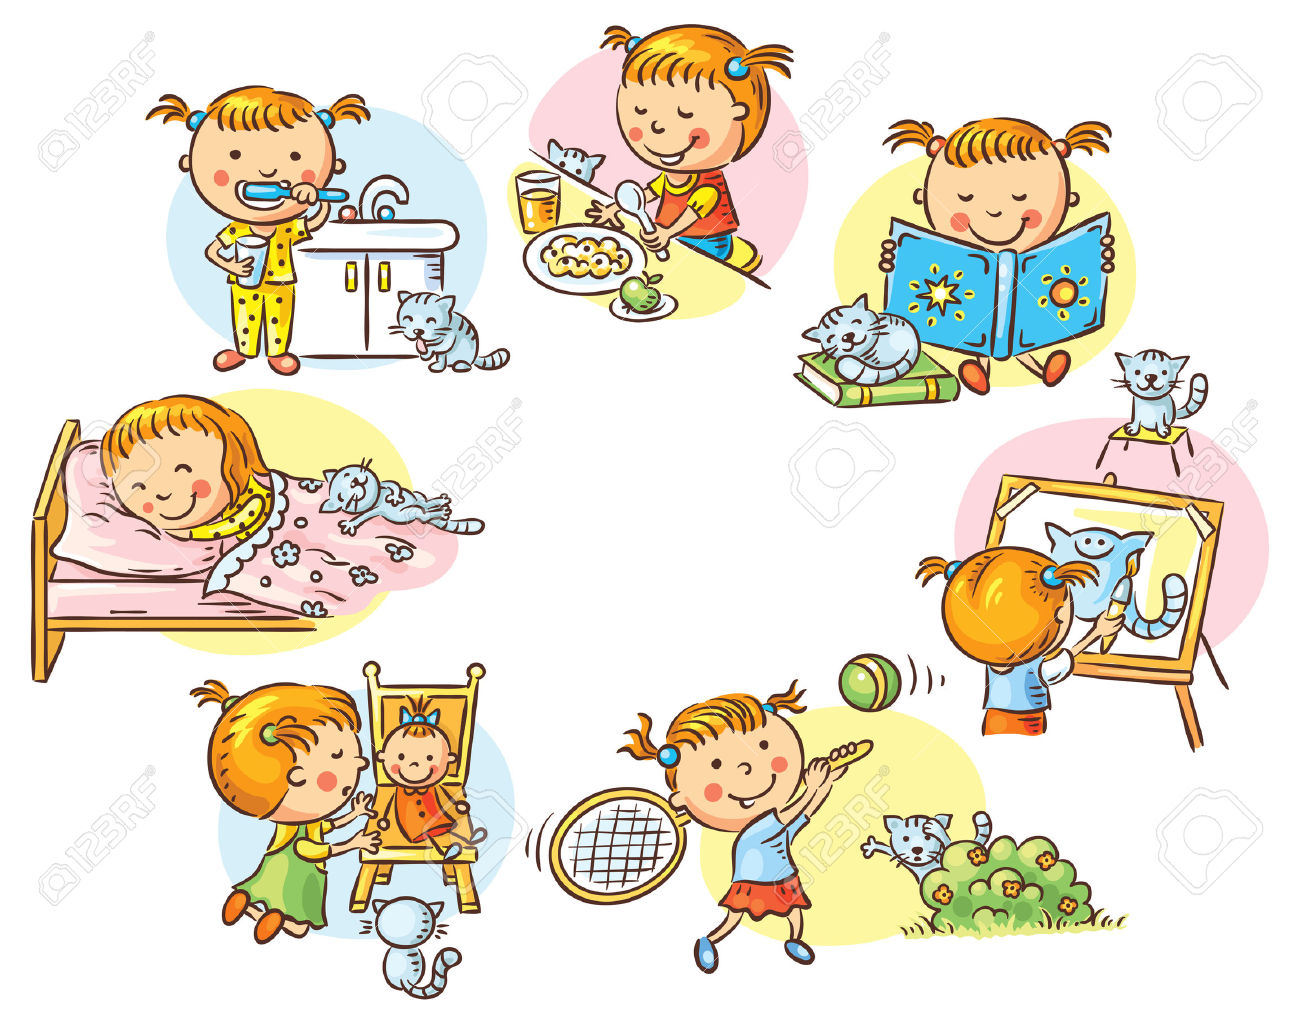 Activity station clipart graphic free download Daily activity clipart 1 » Clipart Station graphic free download